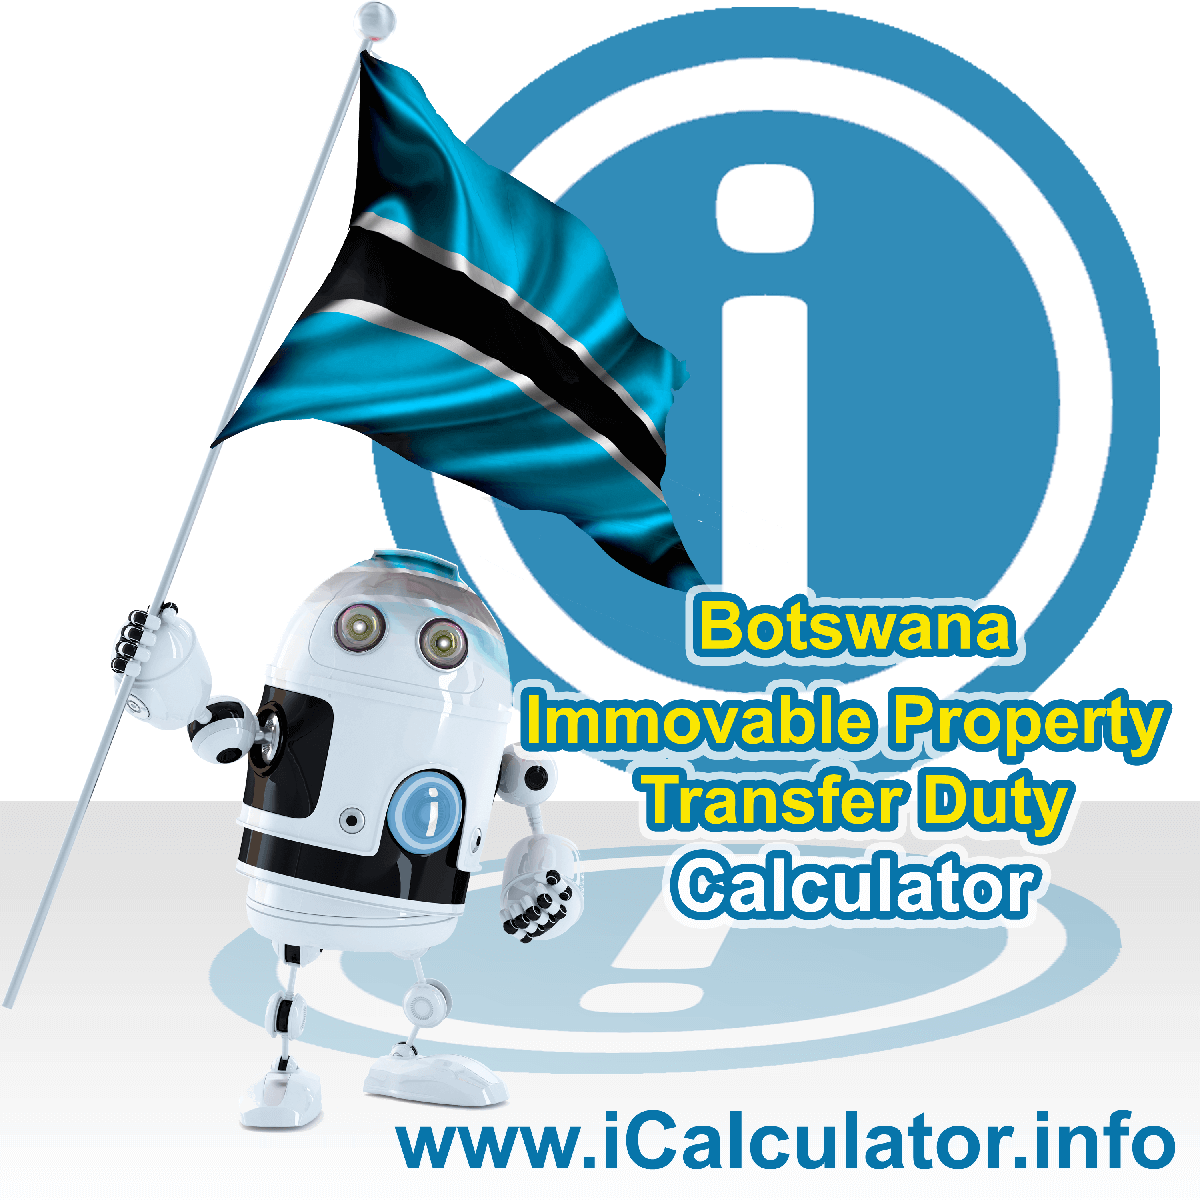 Botswana IPTD Calculator. This image shows the Botswana flag and information relating to the IPTD formula used for calculating the transfer duty on immovable property in Botswana using the Botswana IPTD Calculator in 2020